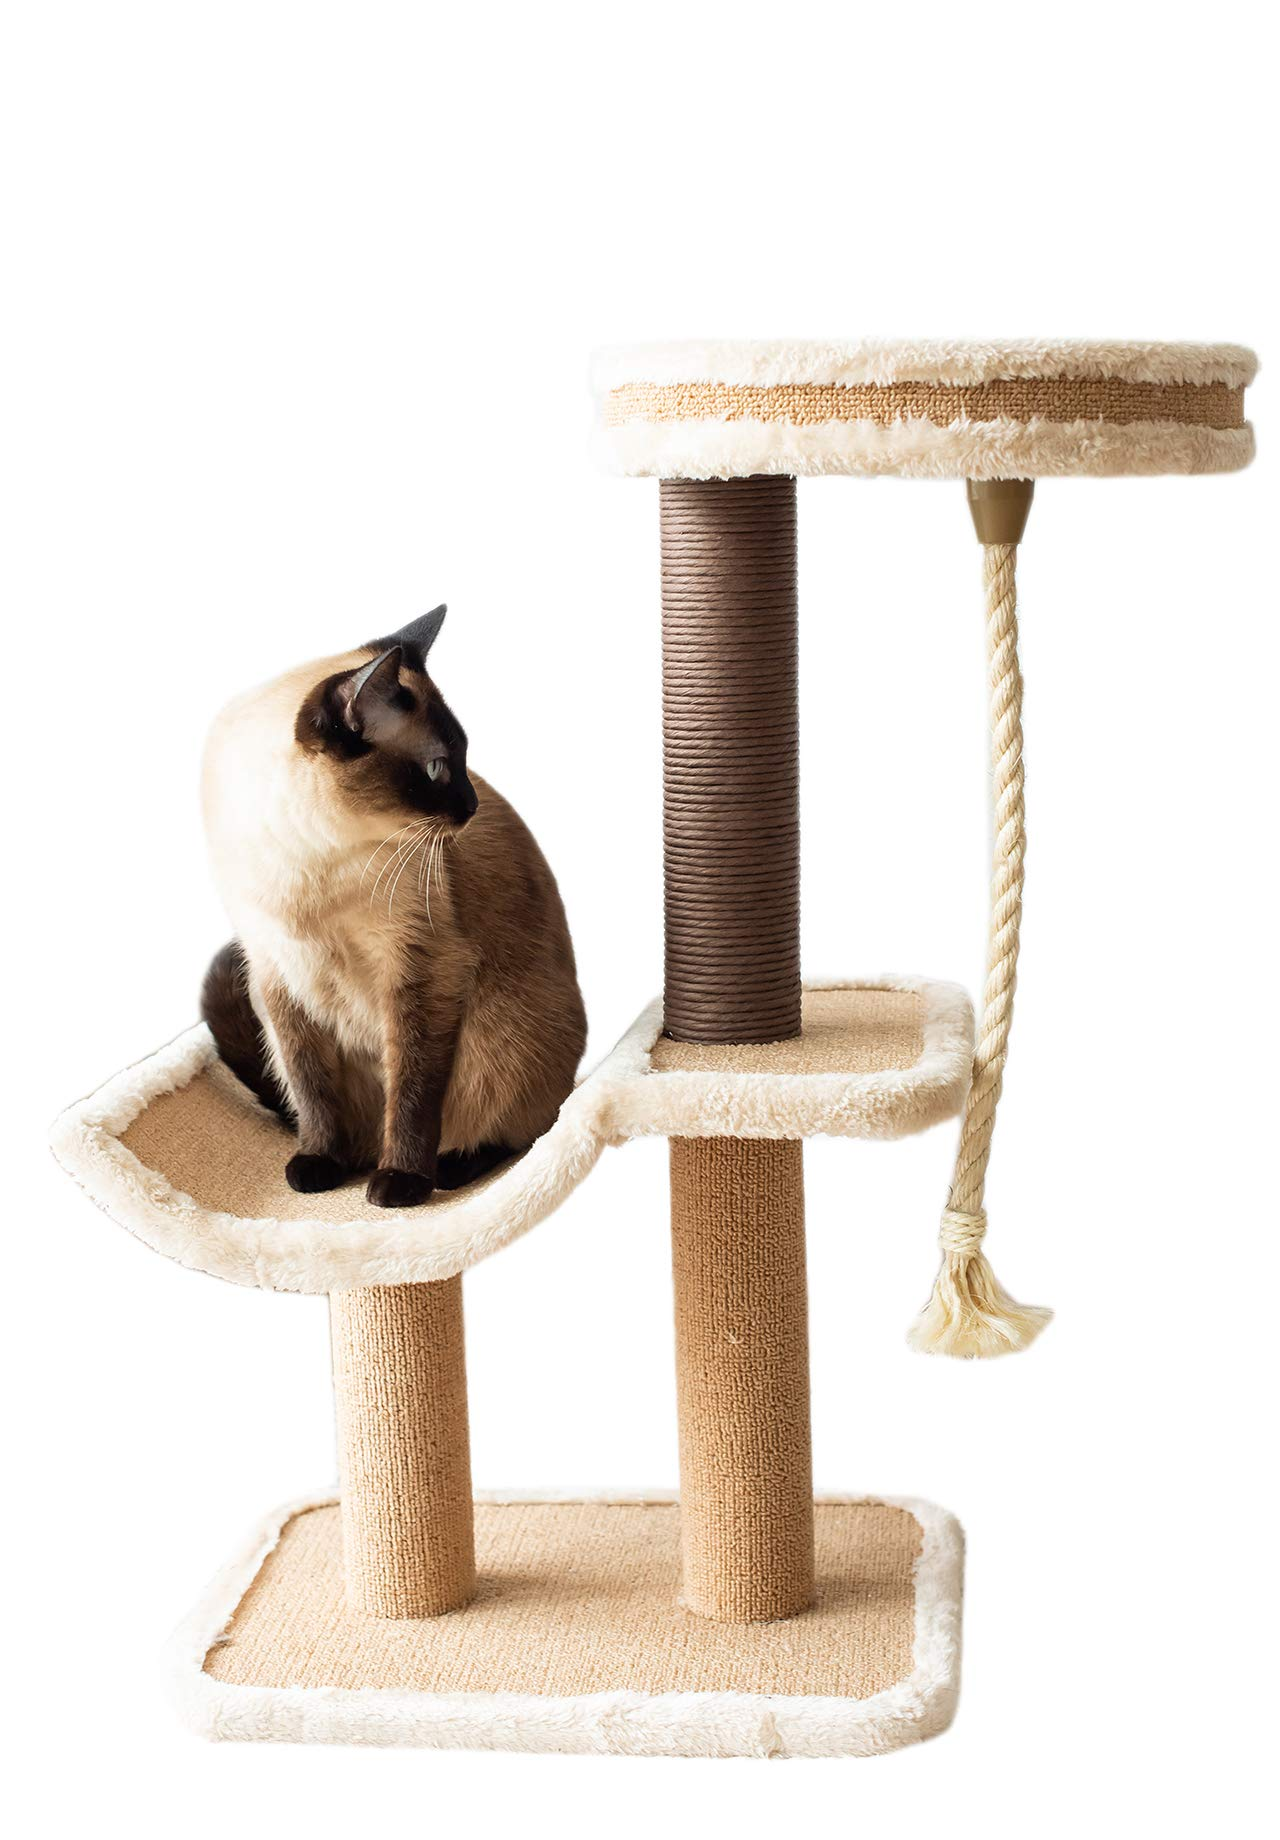 Catry, cat Tree Cradle Bed with Natural Sisal Scratching Posts and Teasing Rope for Kitten by Catry